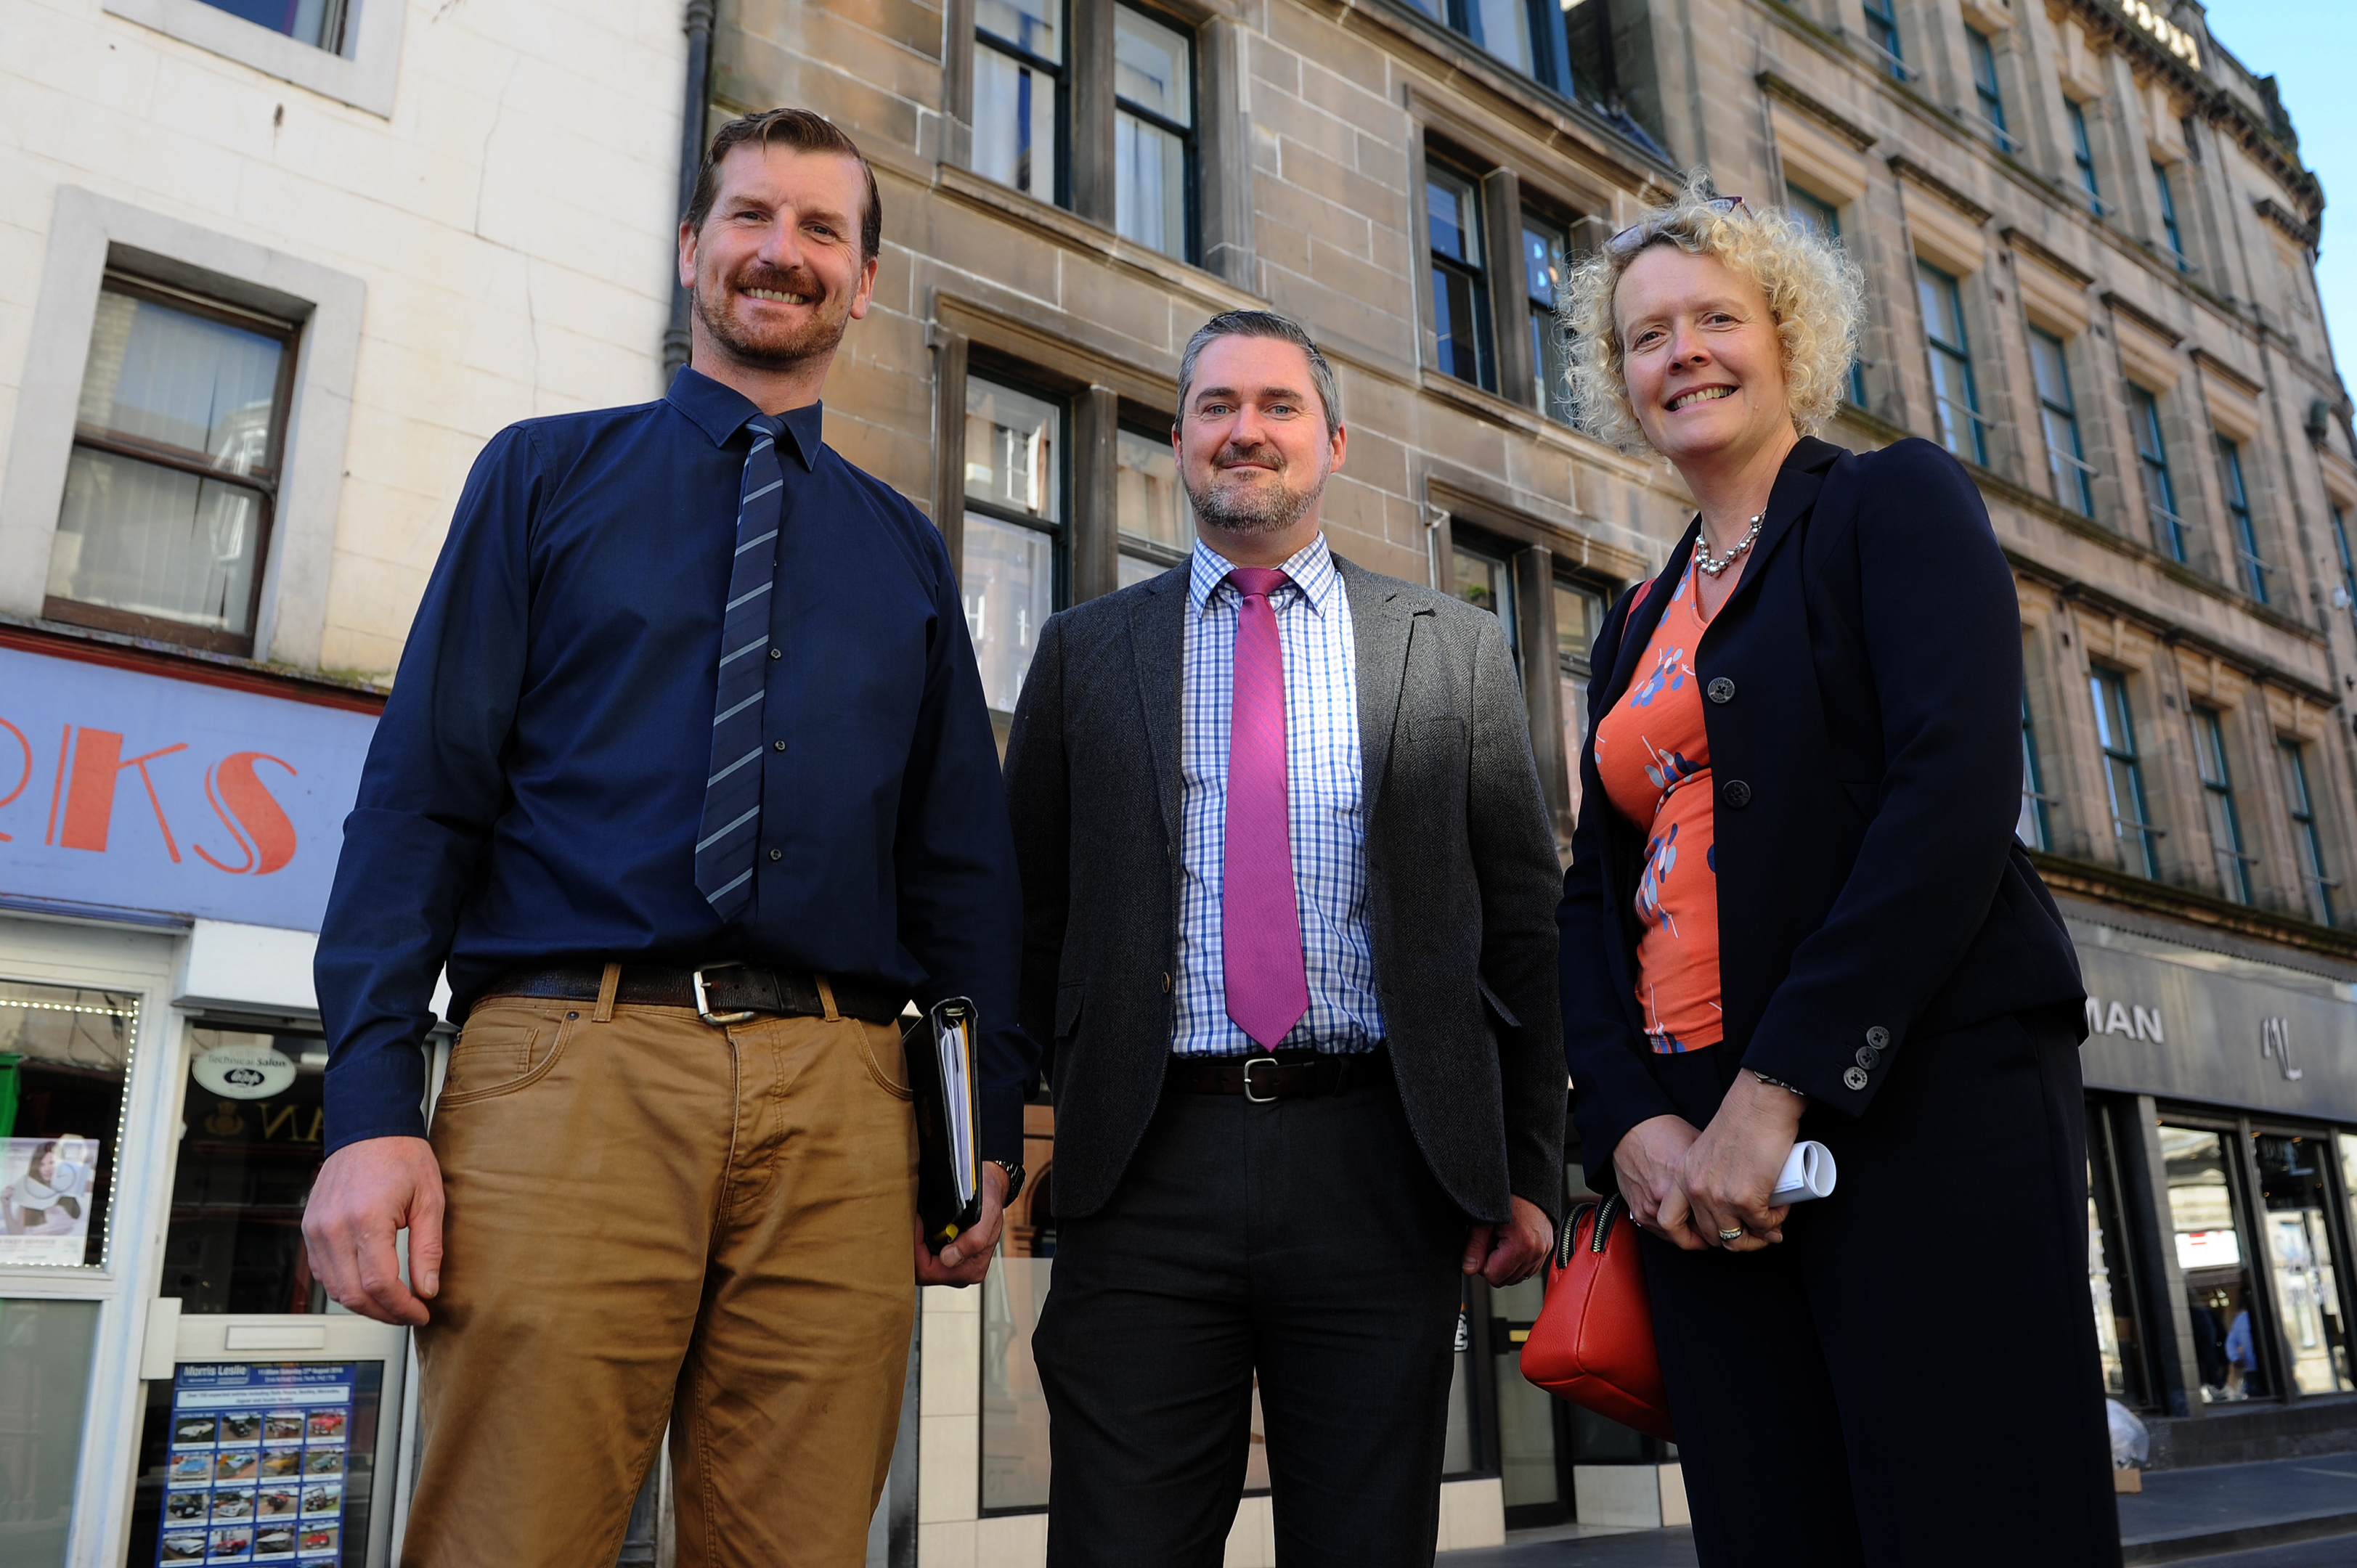 Councillor Dave Doogan, Martin Smith (Private Sector Access Manager) and Isobel Butt (Vacant Property Development Officer), High Street, Perth.